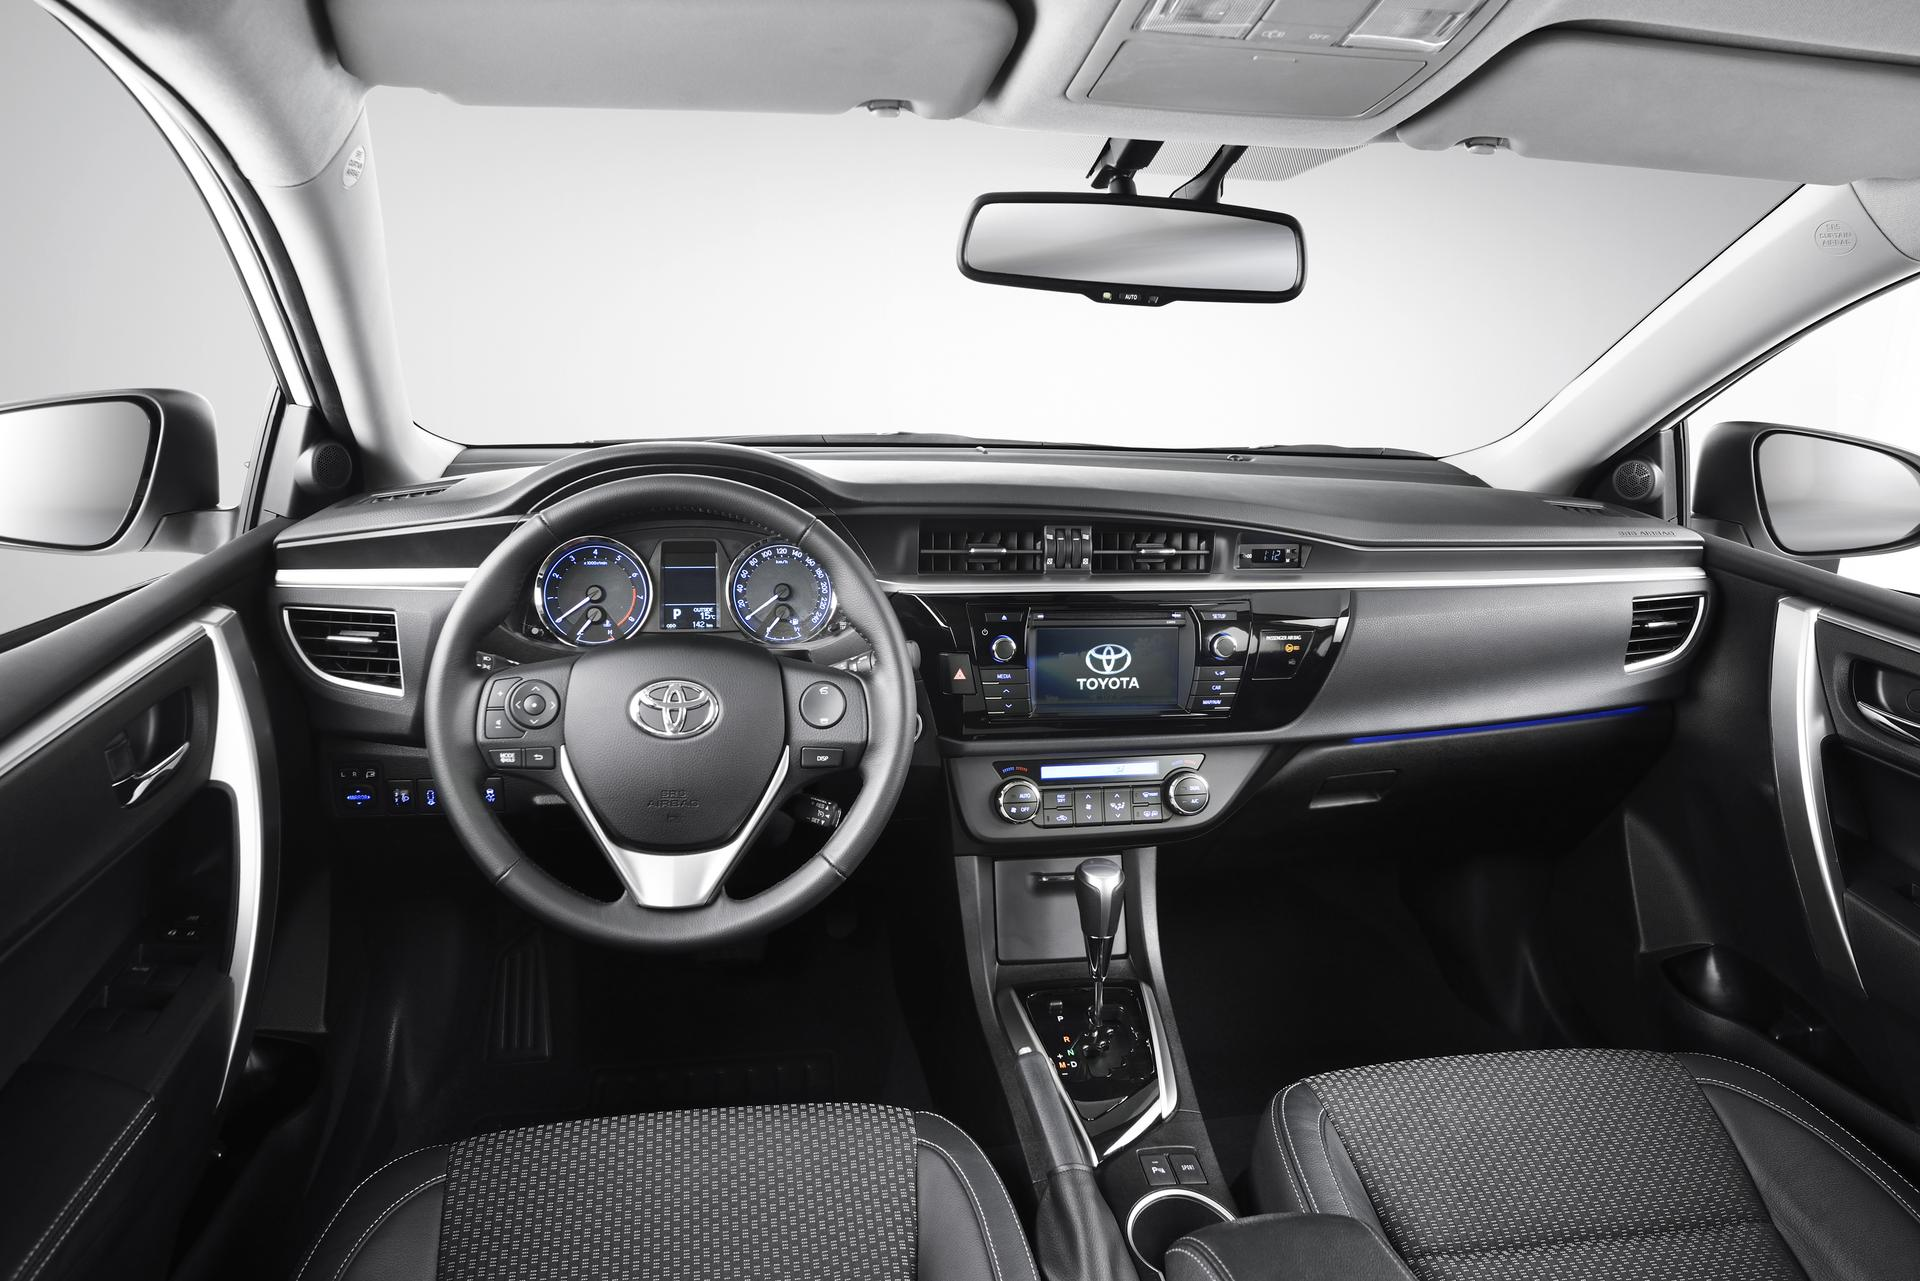 2013 The new Toyota Corolla DPL: Interior